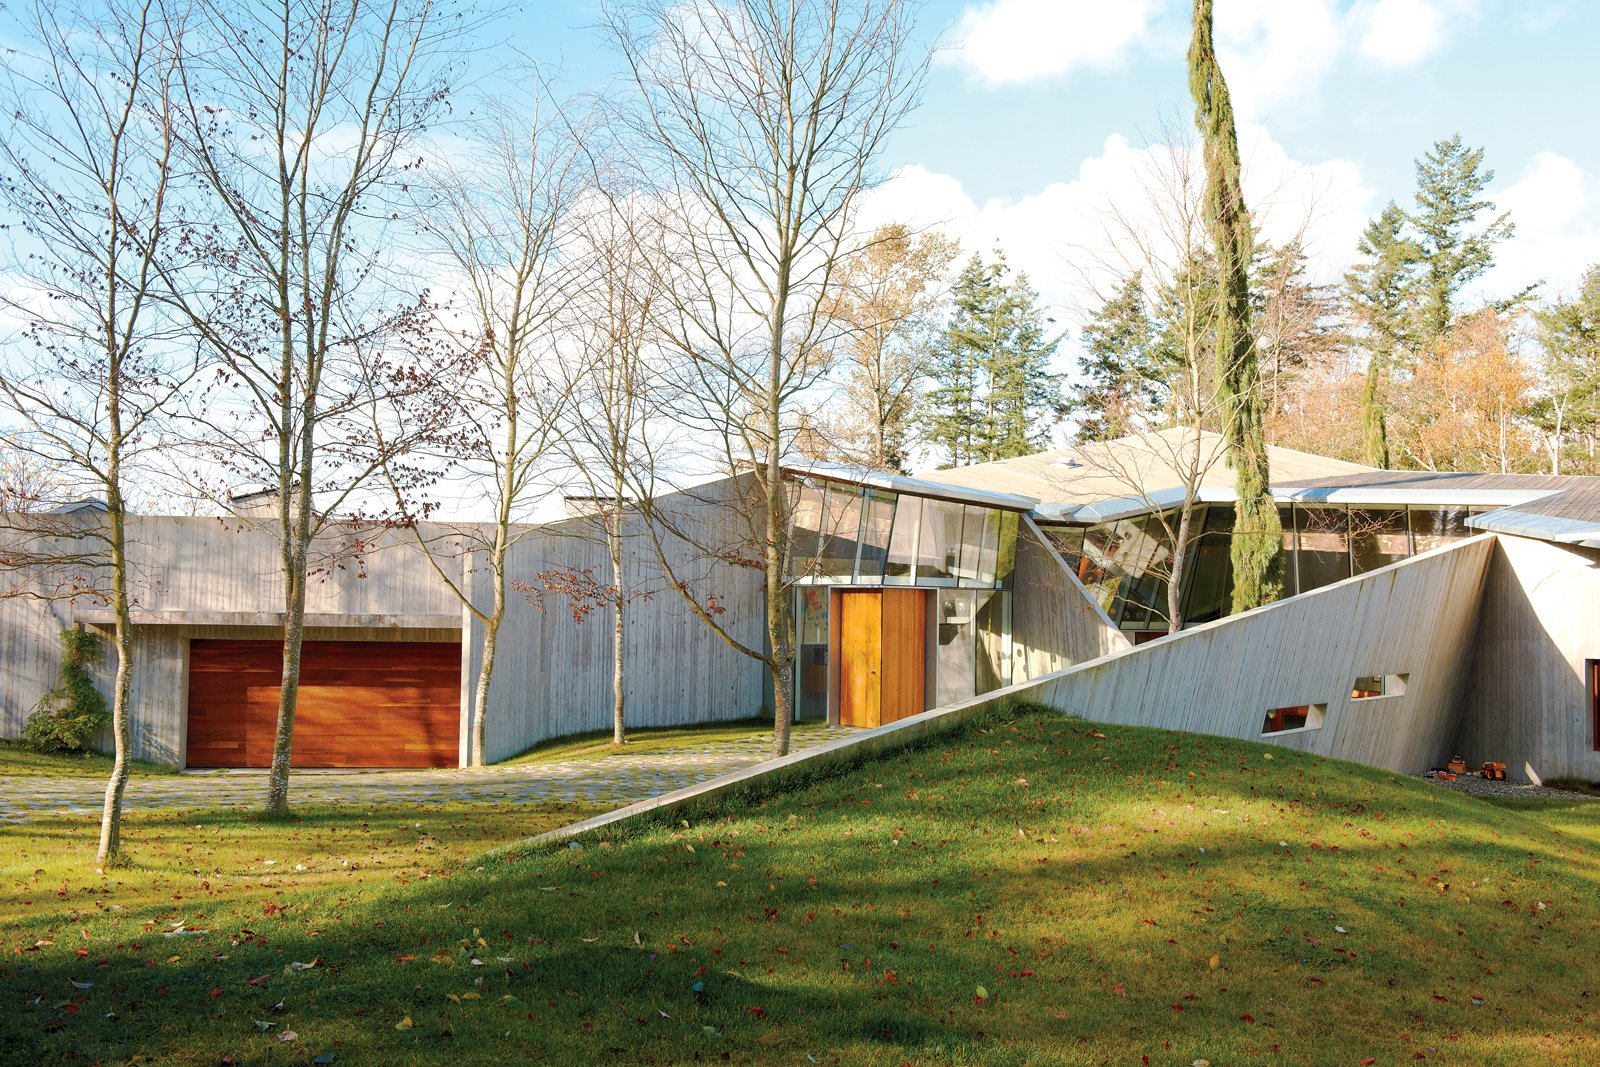 232 House Modern Home in Canada by Omer Arbel Office Inc on Dwell